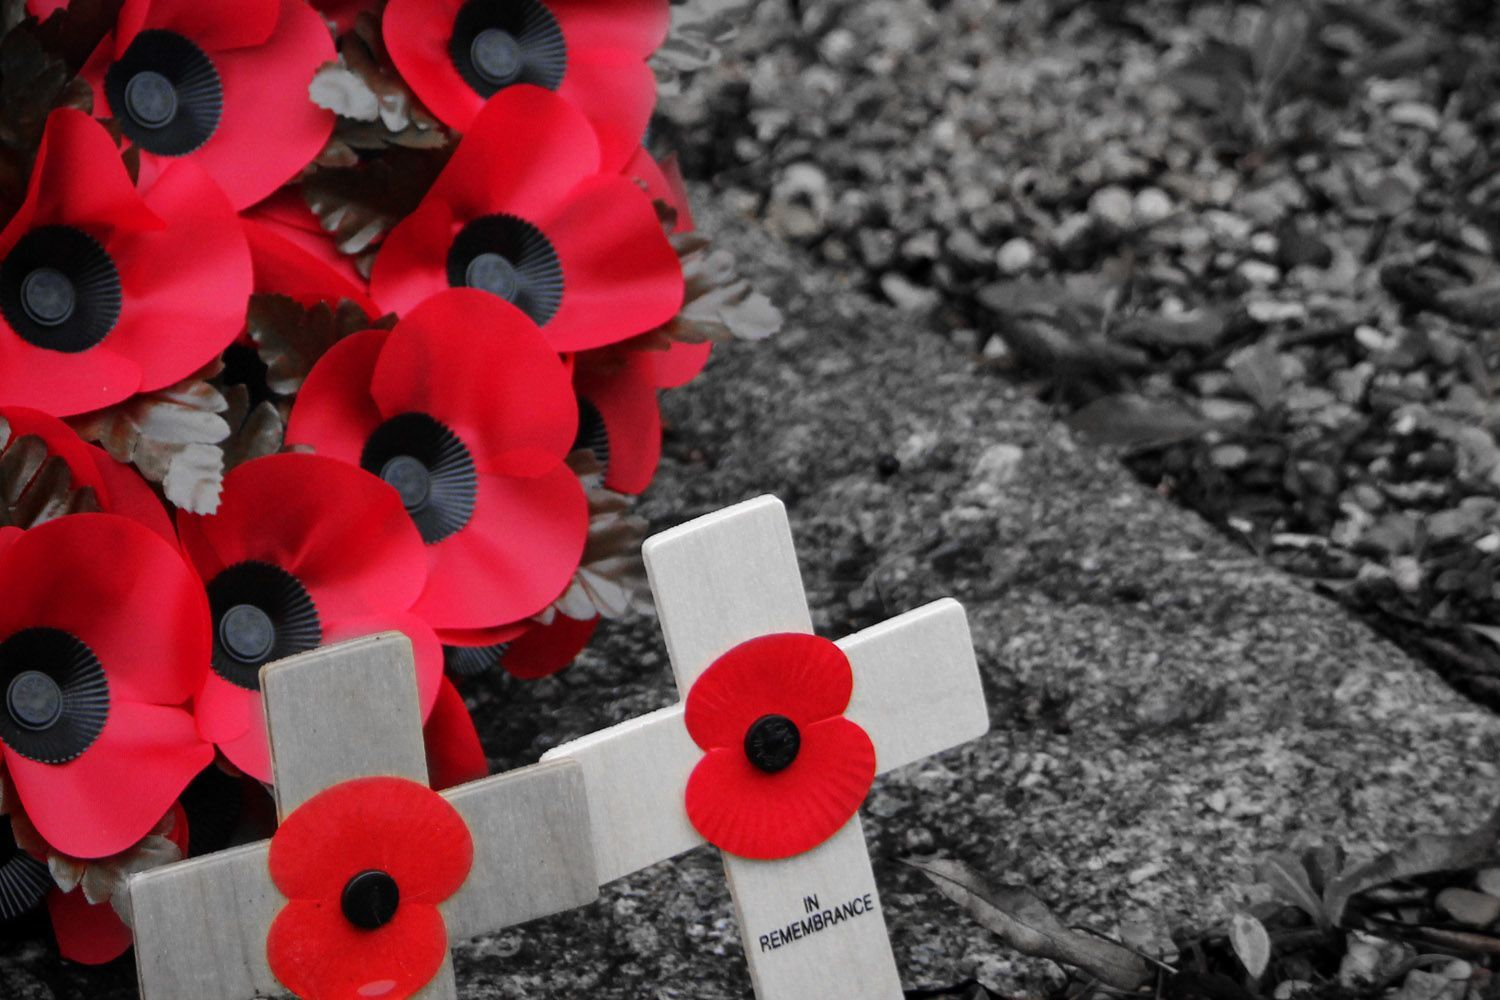 remembrance day hd wallpaper, remembrance day soldiers graves